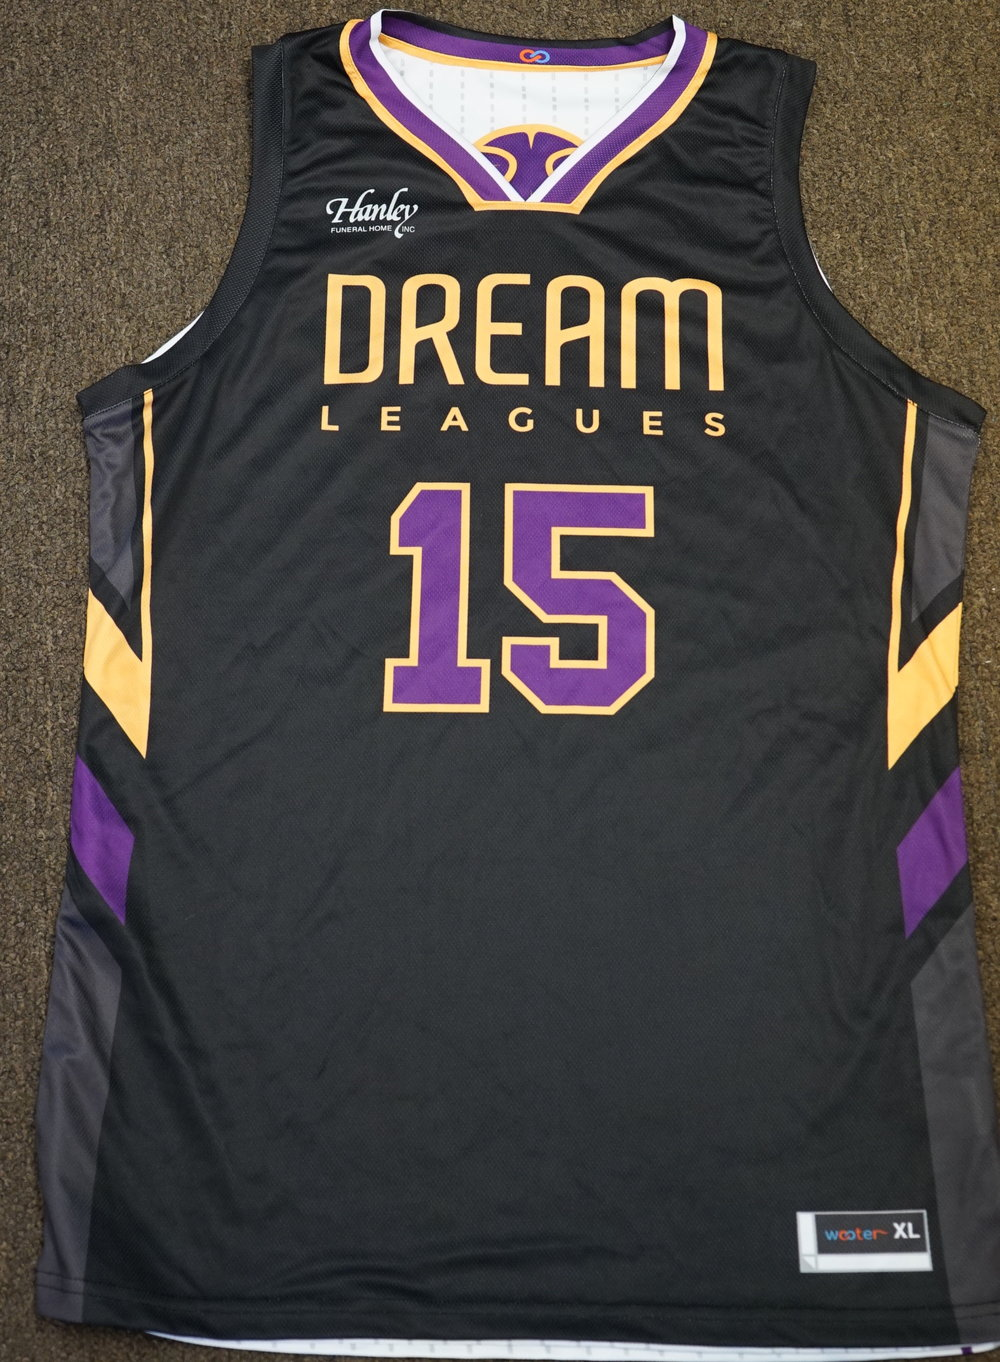 DREAM LEAGUES White Purple Black and Yellow Basketball Uniforms, Jerseys